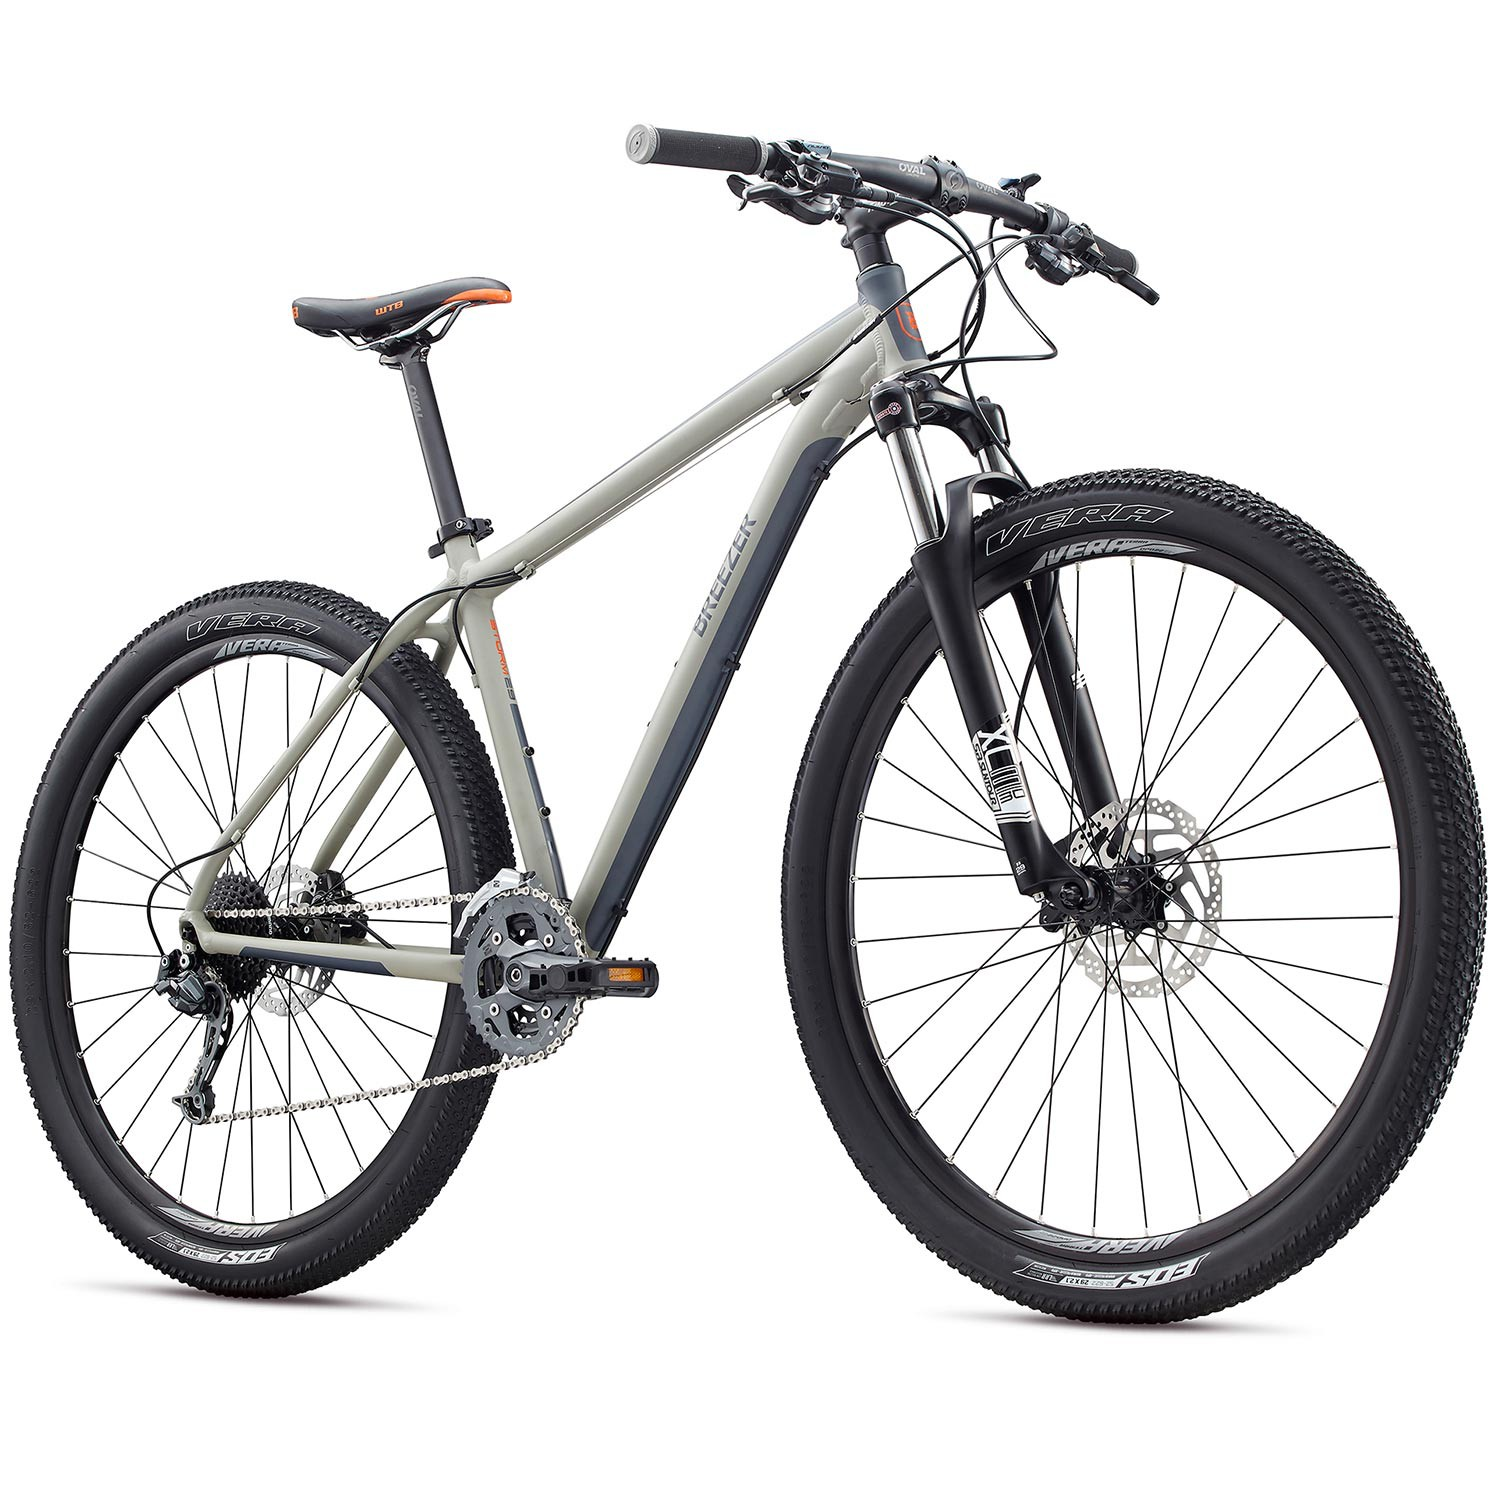 29 zoll breezer storm comp mountainbike mtb fahrrad 29er. Black Bedroom Furniture Sets. Home Design Ideas